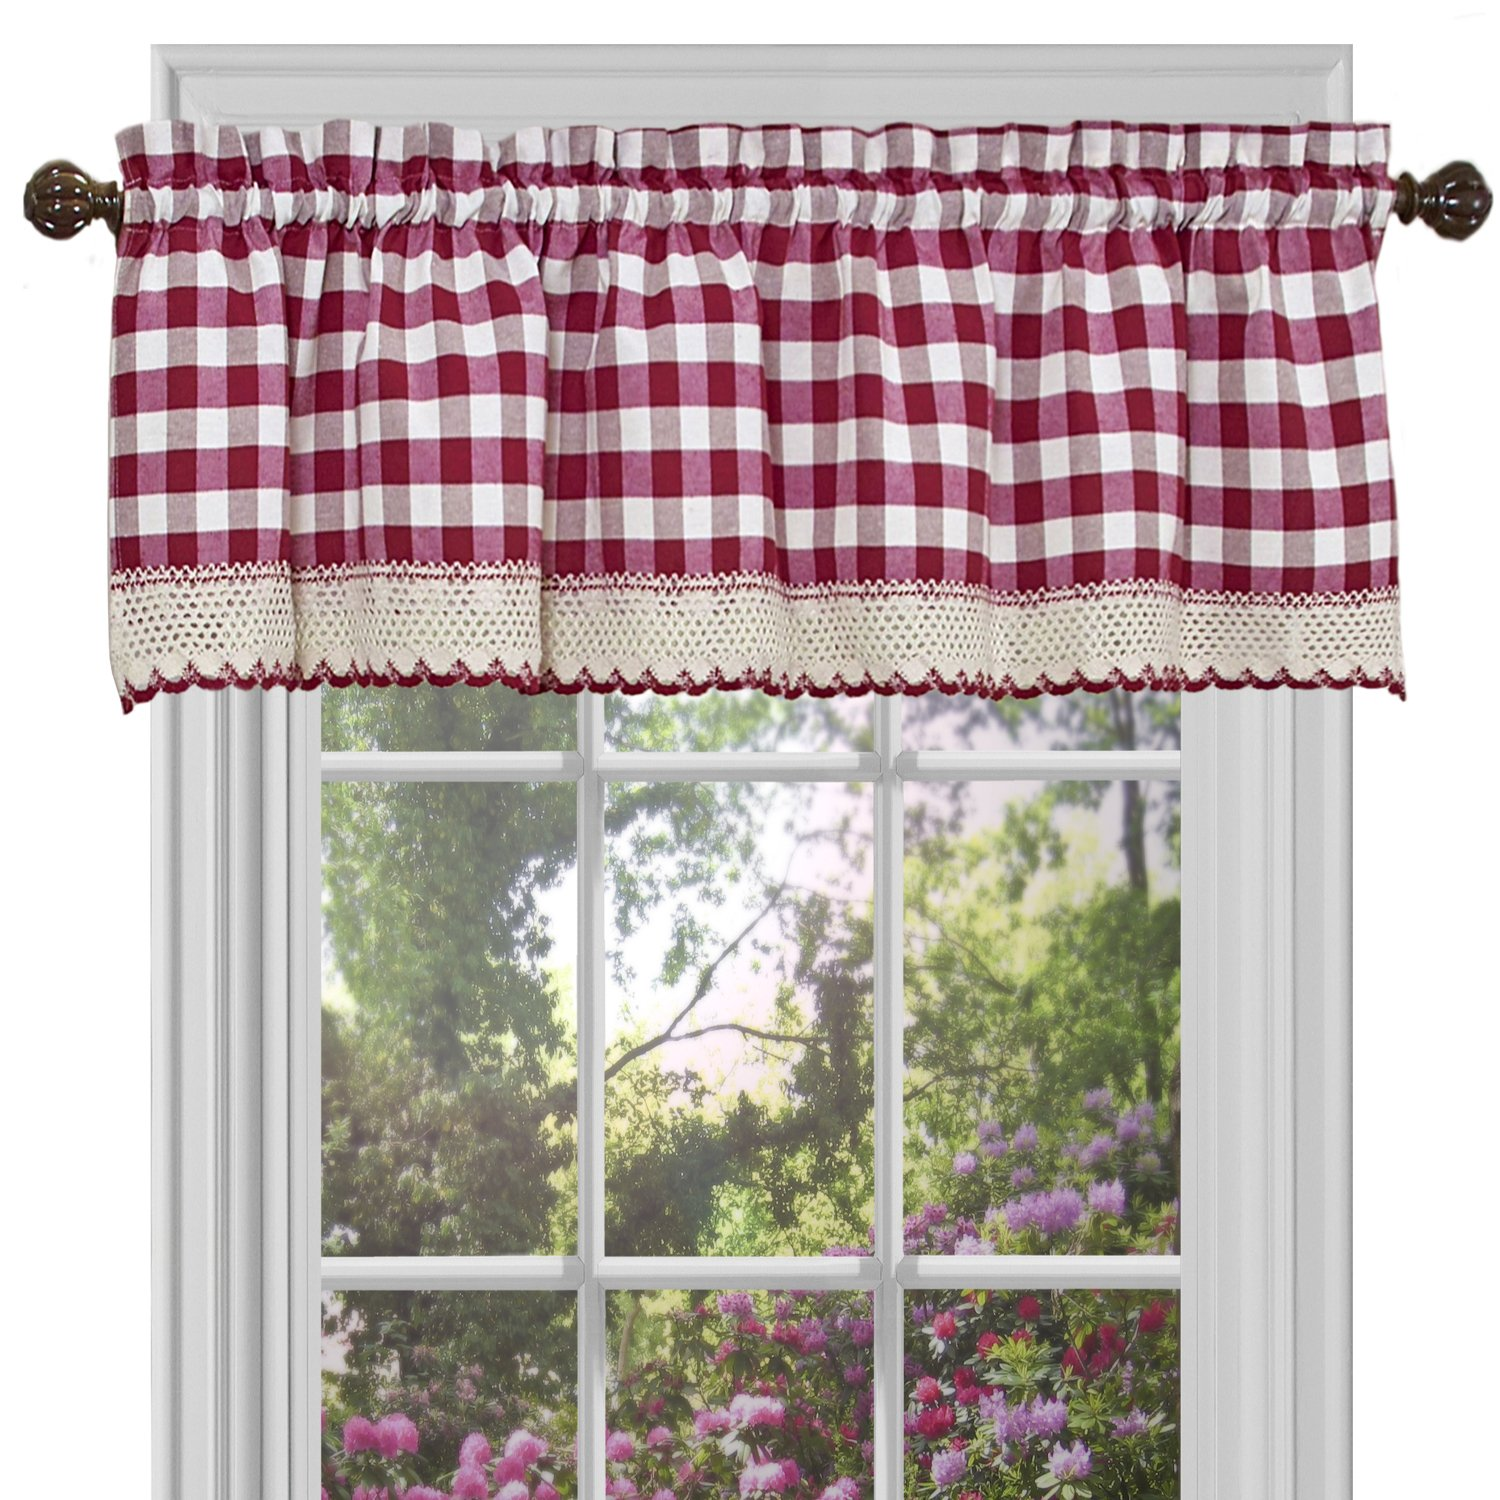 Buffalo Check Plaid Gingham Custom Fit Window Curtain Treatments By GoodGram